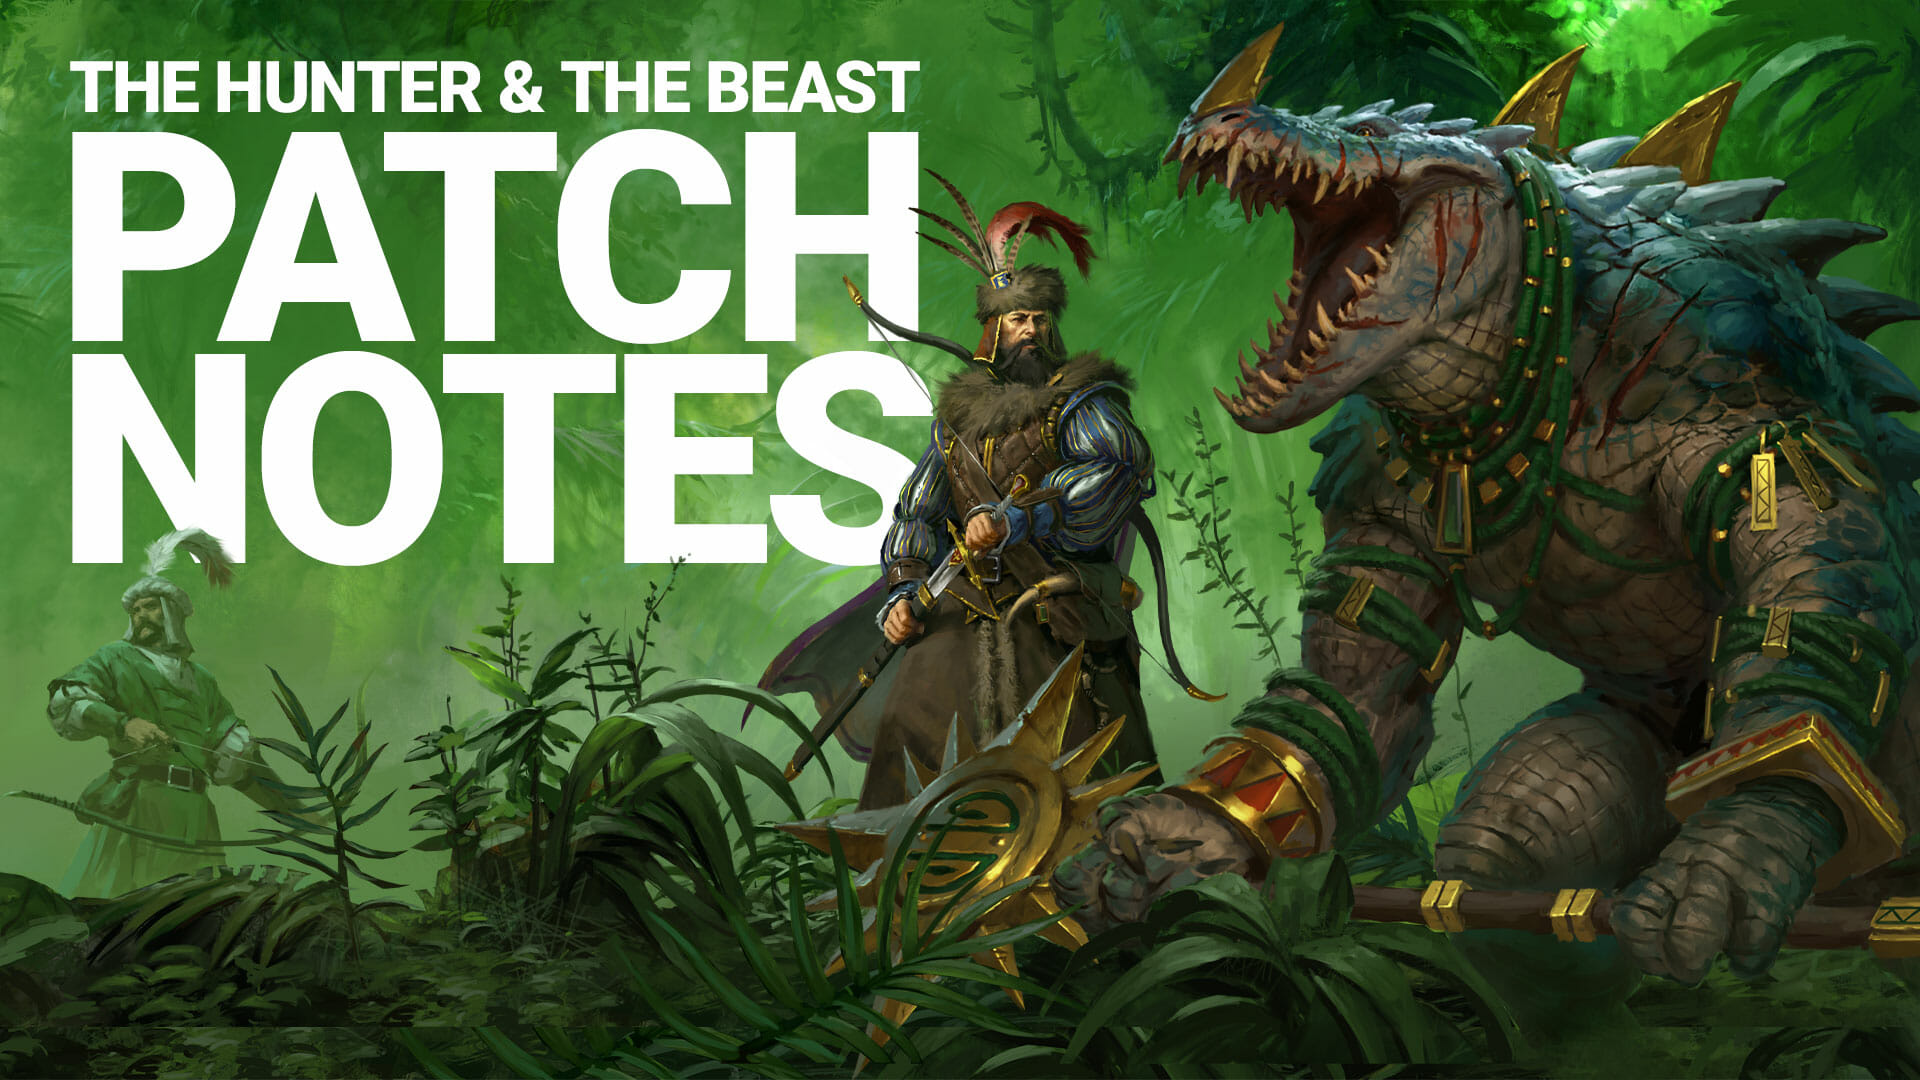 Total War Warhammer Ii Patch Notes The Empire Undivided Update Total War Not all who wander are lost . total war warhammer ii patch notes